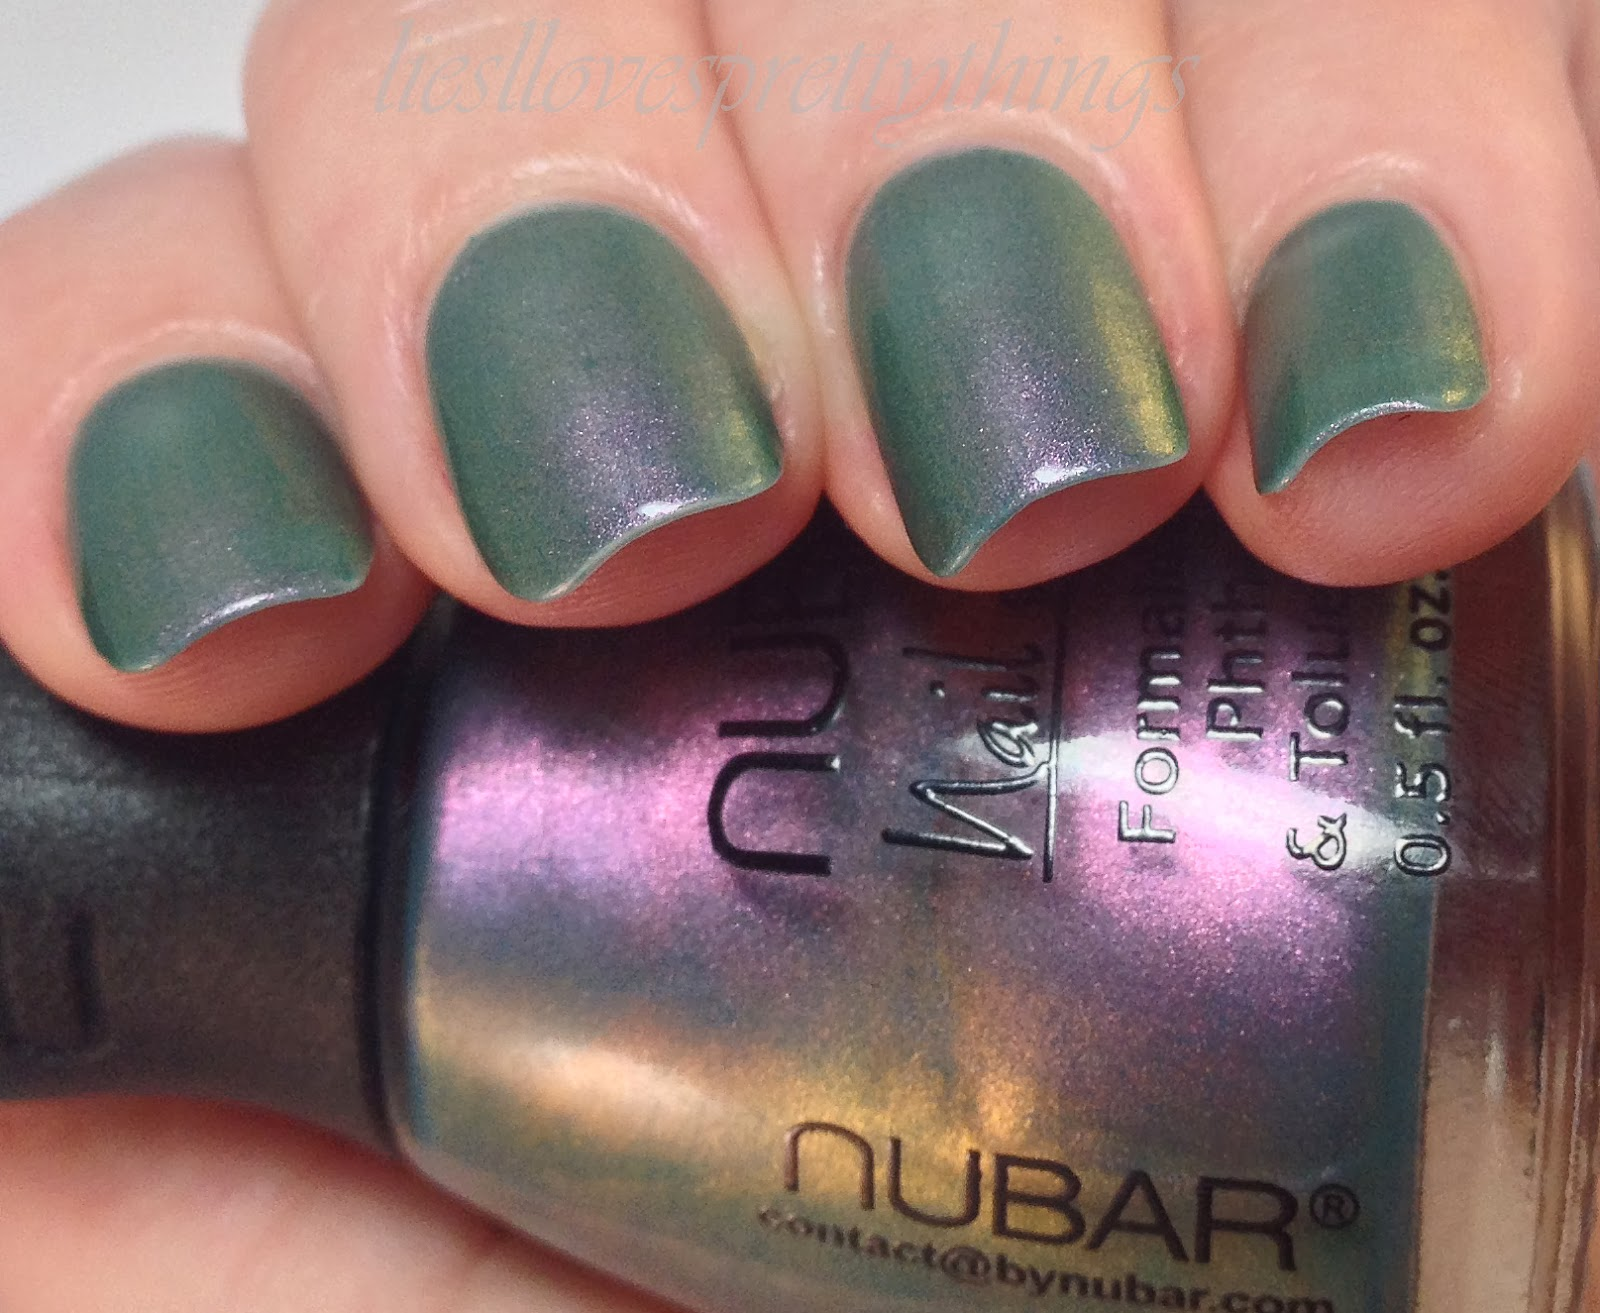 Nubar Indigo Illusion swatch and review